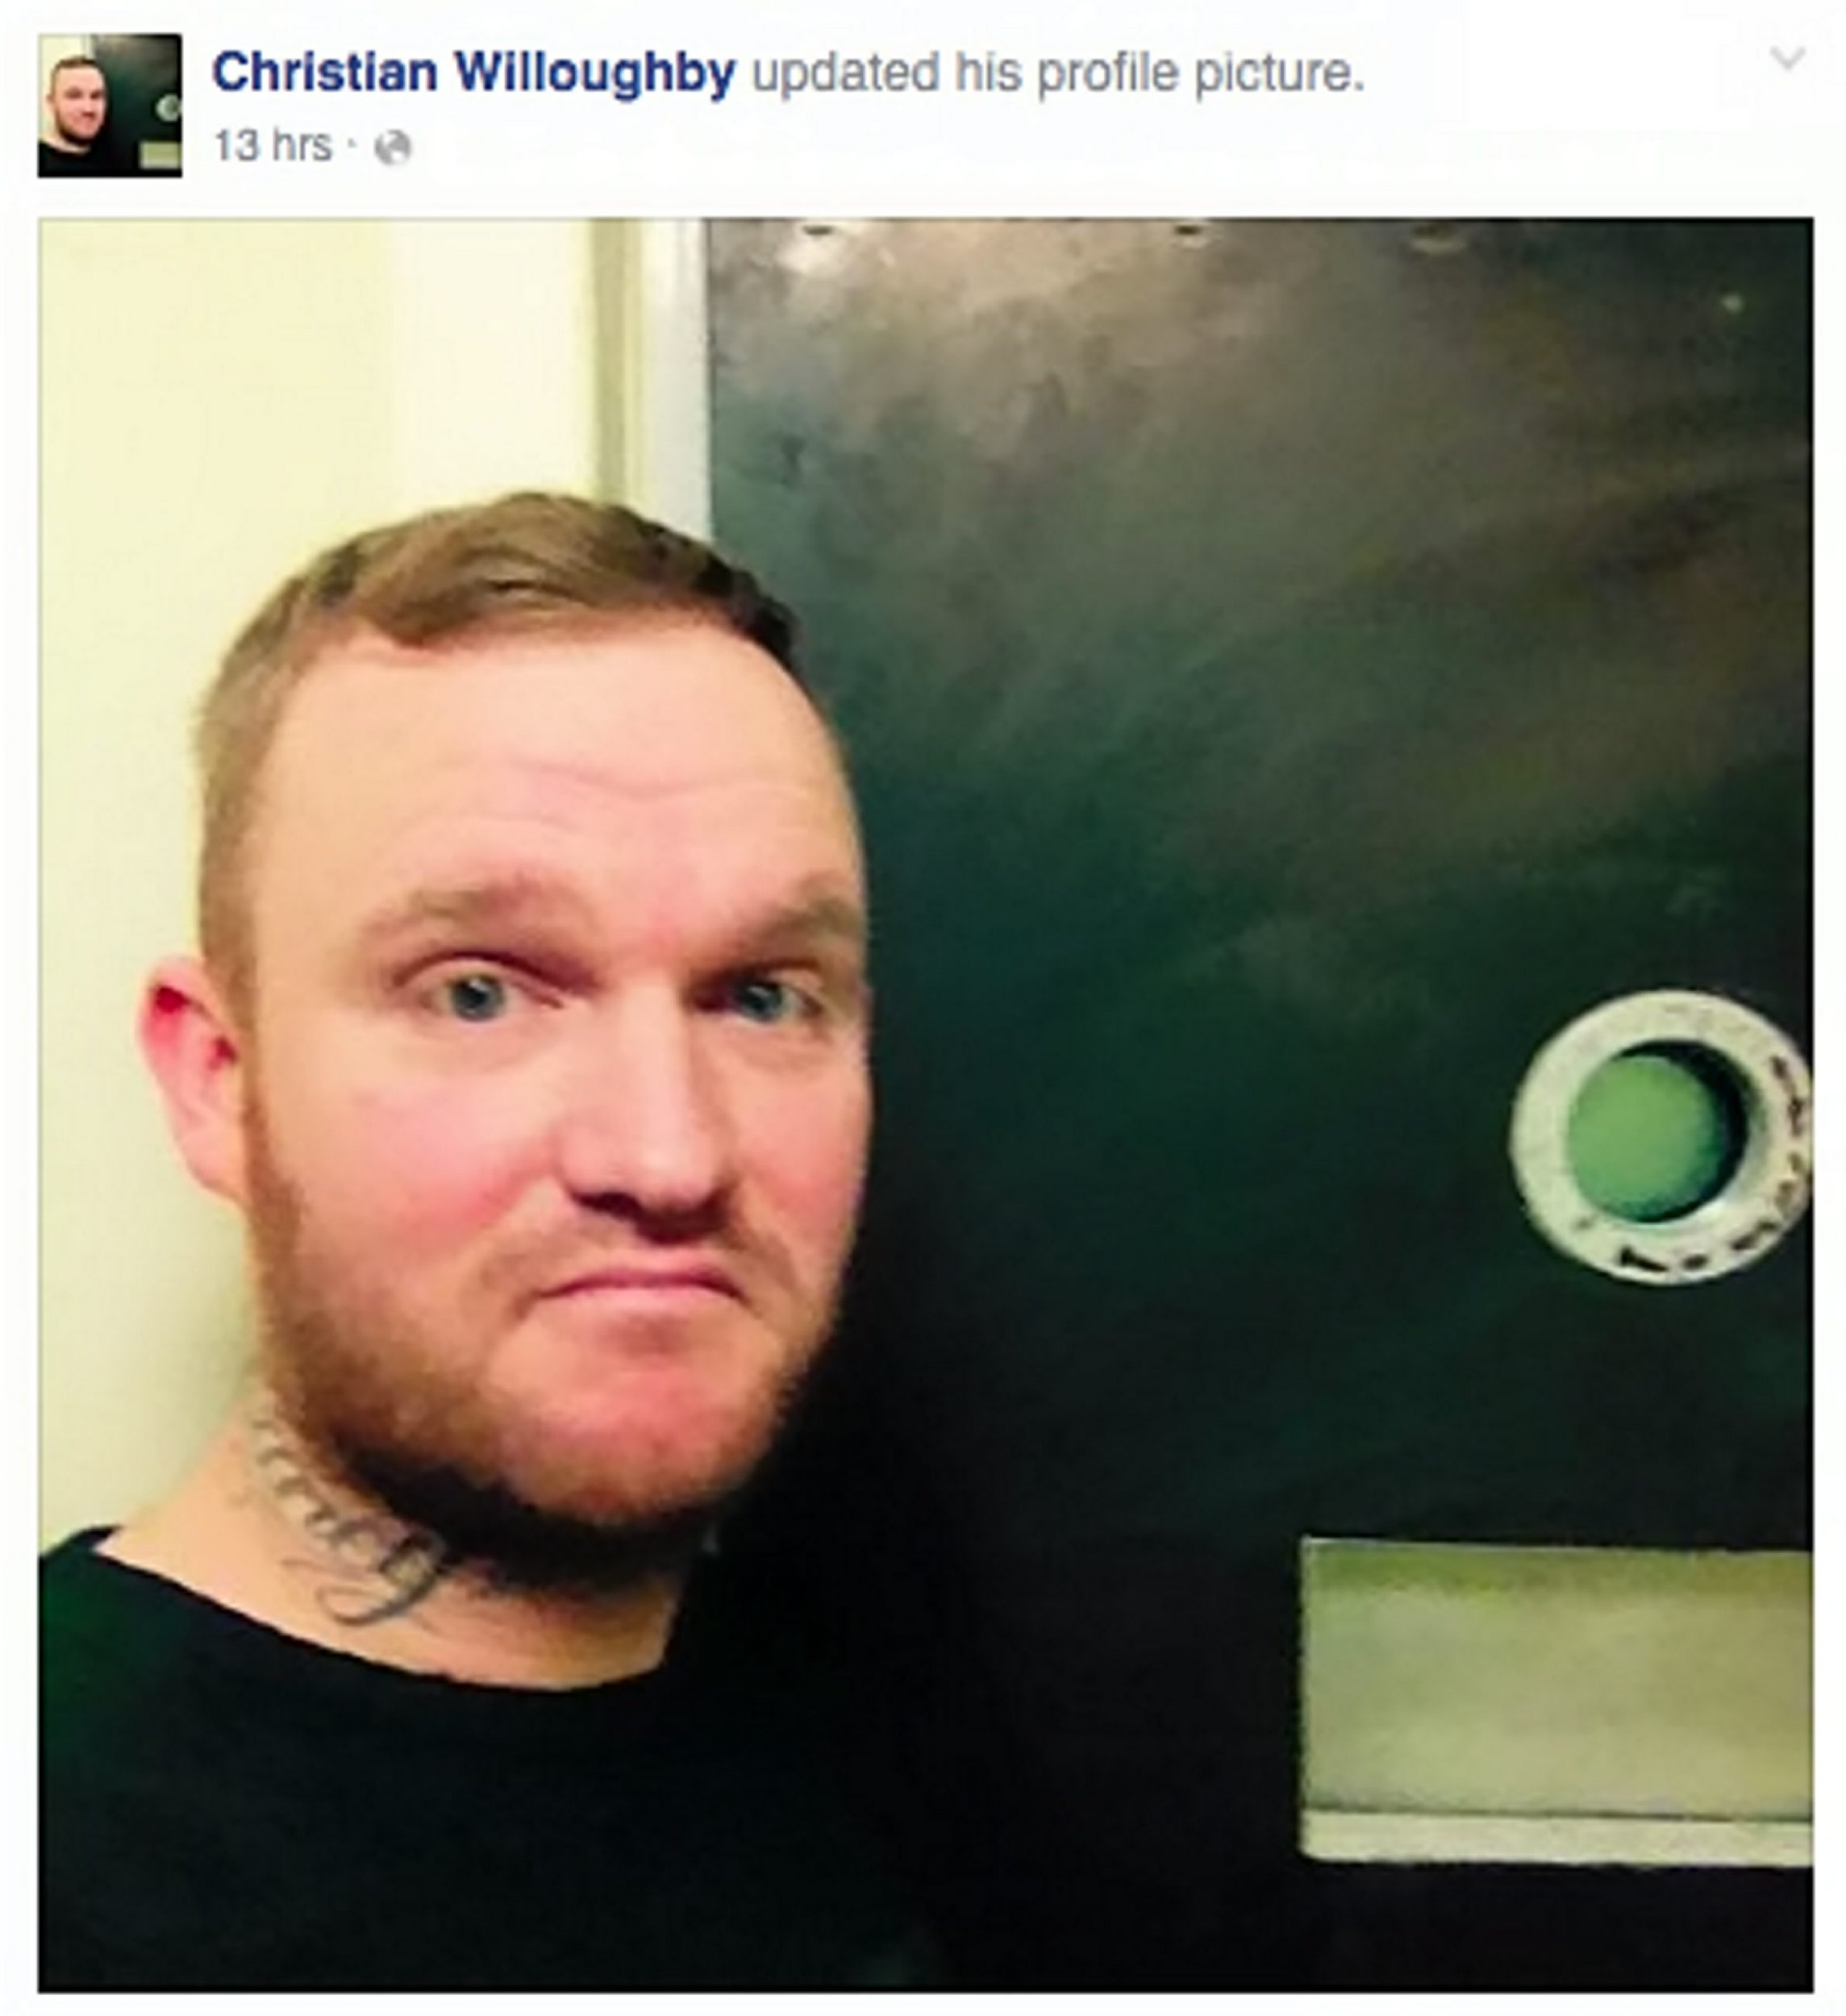 """Picture from the Facebook page of Christian Willoughby with his Trip Advisor style review of a Grimsby Police cell. See Ross Parry copy RPYJAIL : A prison pundit posted a hilarious Trip Advisor-style review of his """"4-star"""" stay behind bars online - complimenting the staff and his en-suite. The comedic critic described his room as """"ideal for winding down after a hard day"""" and thought """"the minimalistic idea was a nice touch"""". But joker Christian Willoughby thought the """"all-day breakfast"""" let down the accommodation. He somehow managed to take pictures in the cell which he posted to accompany the review, which show the food, bed and toilet standards."""